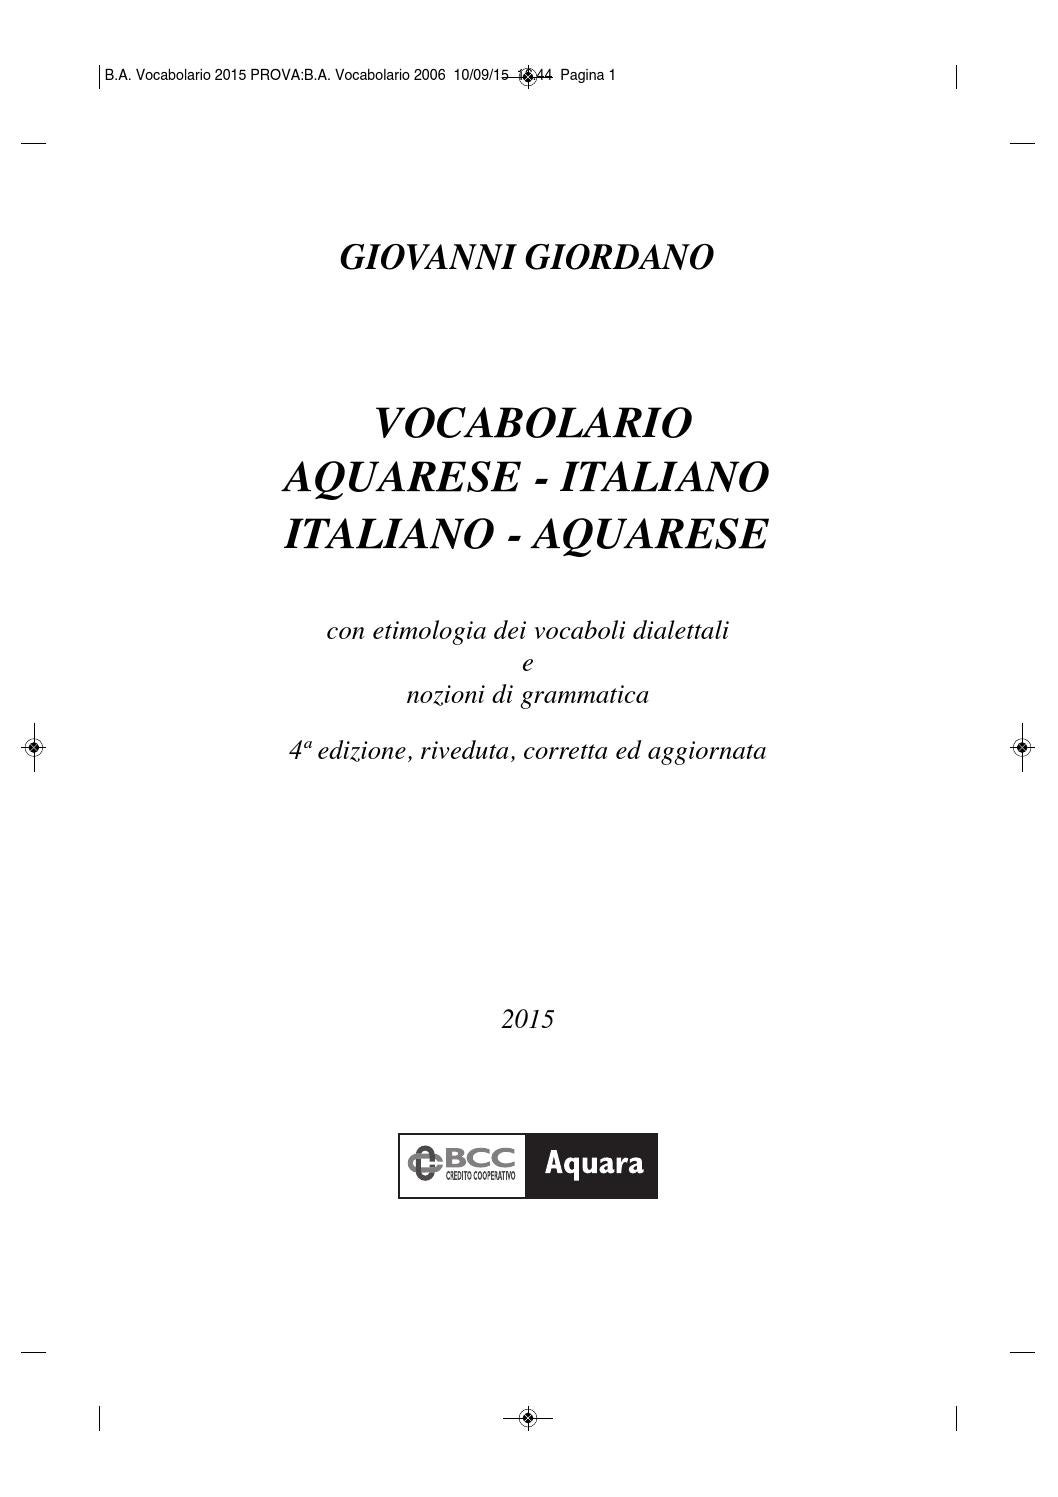 Vocabolario 2015 Aquarese Italiano by Sergio Capozzoli - issuu